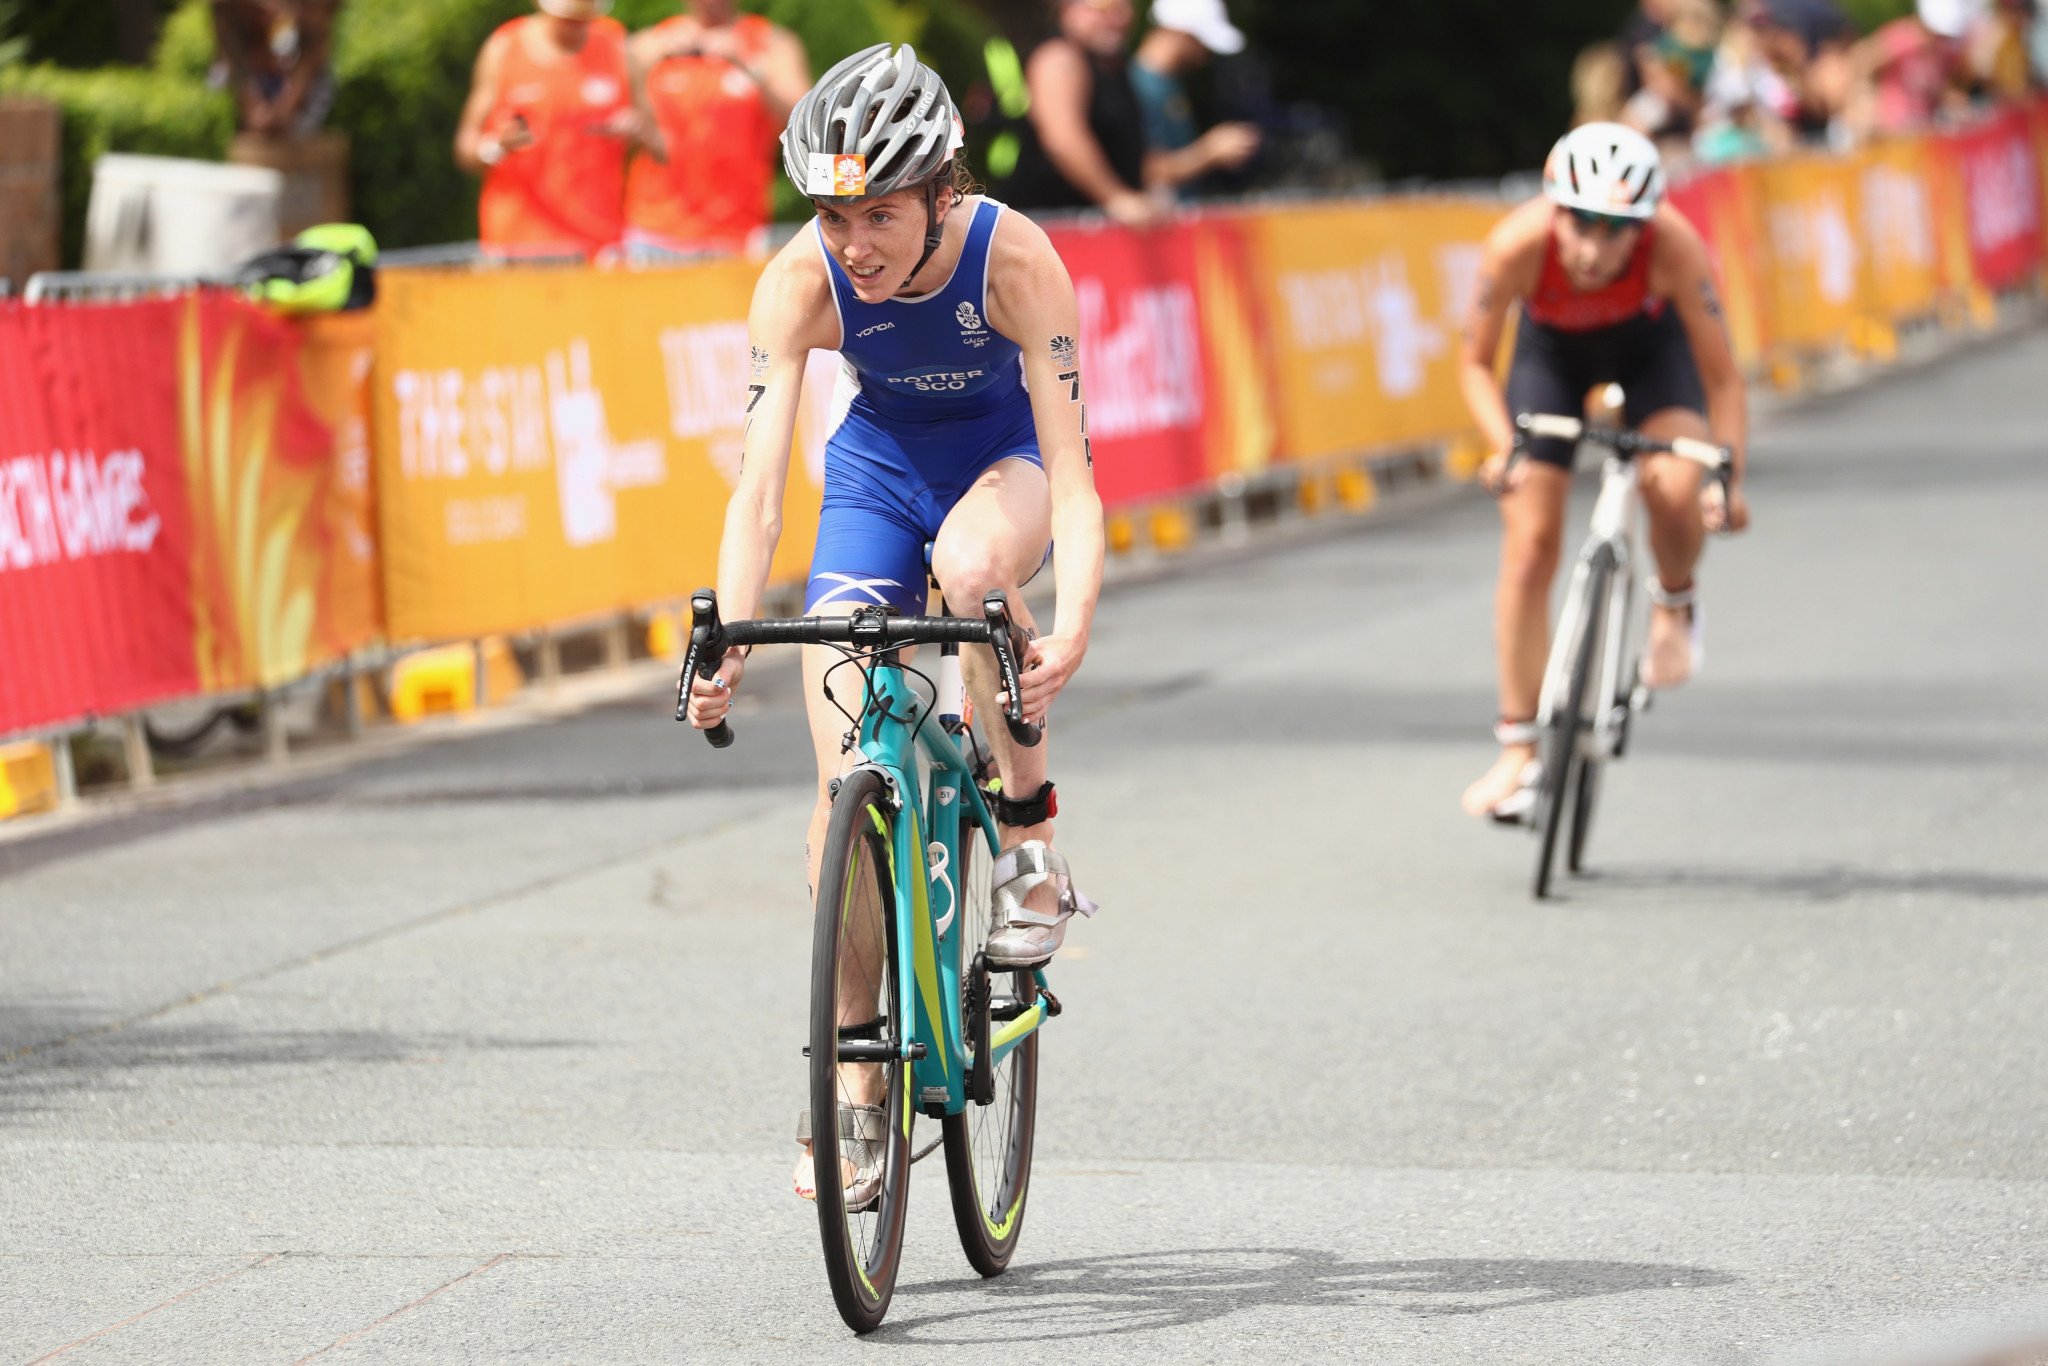 Pujades and Potter power to victory at Haeundae World Triathlon Cup